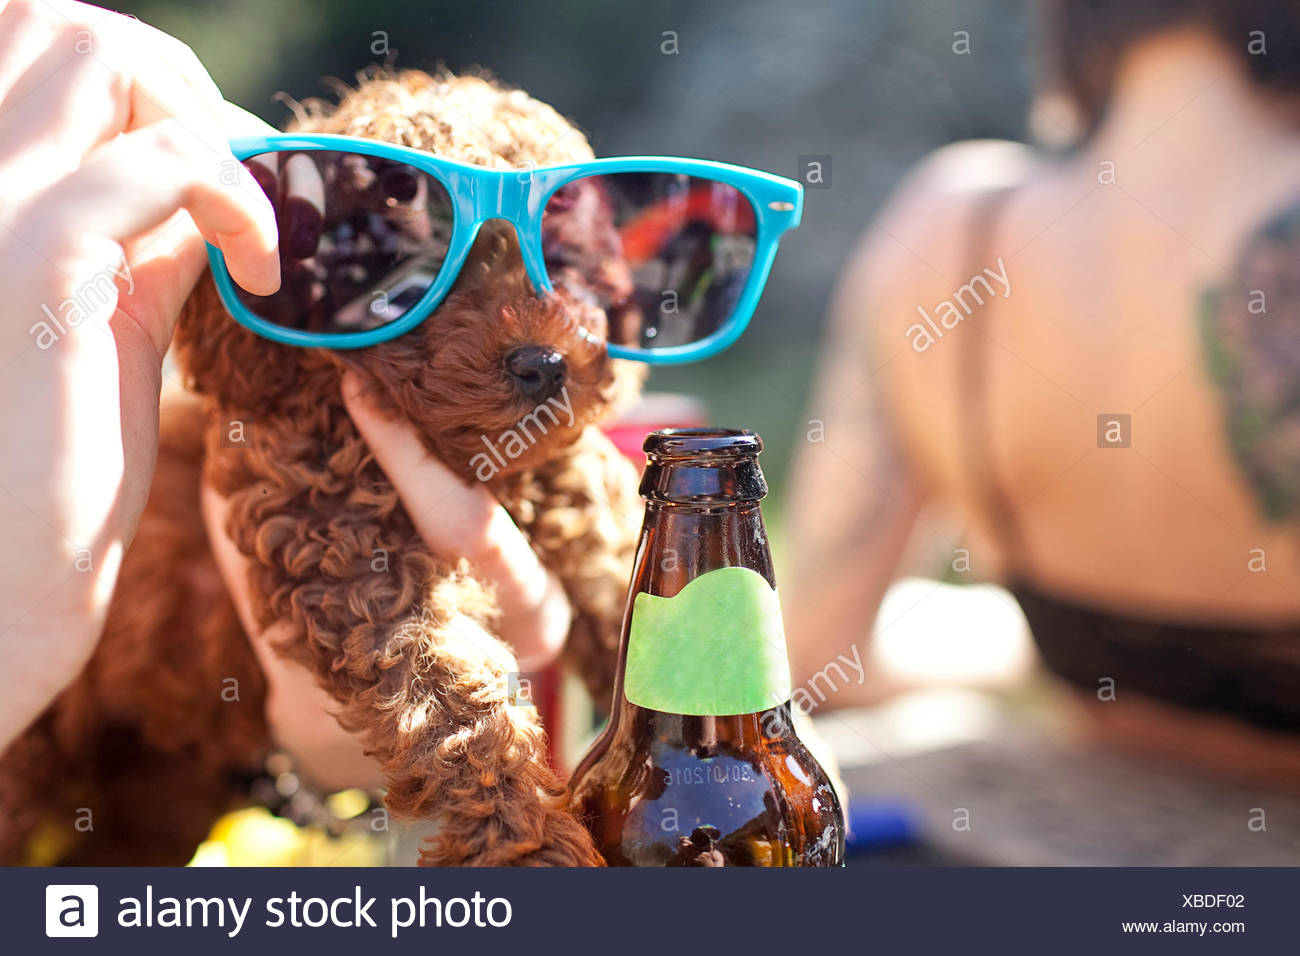 A puppy in sunglasses. - Stock Image